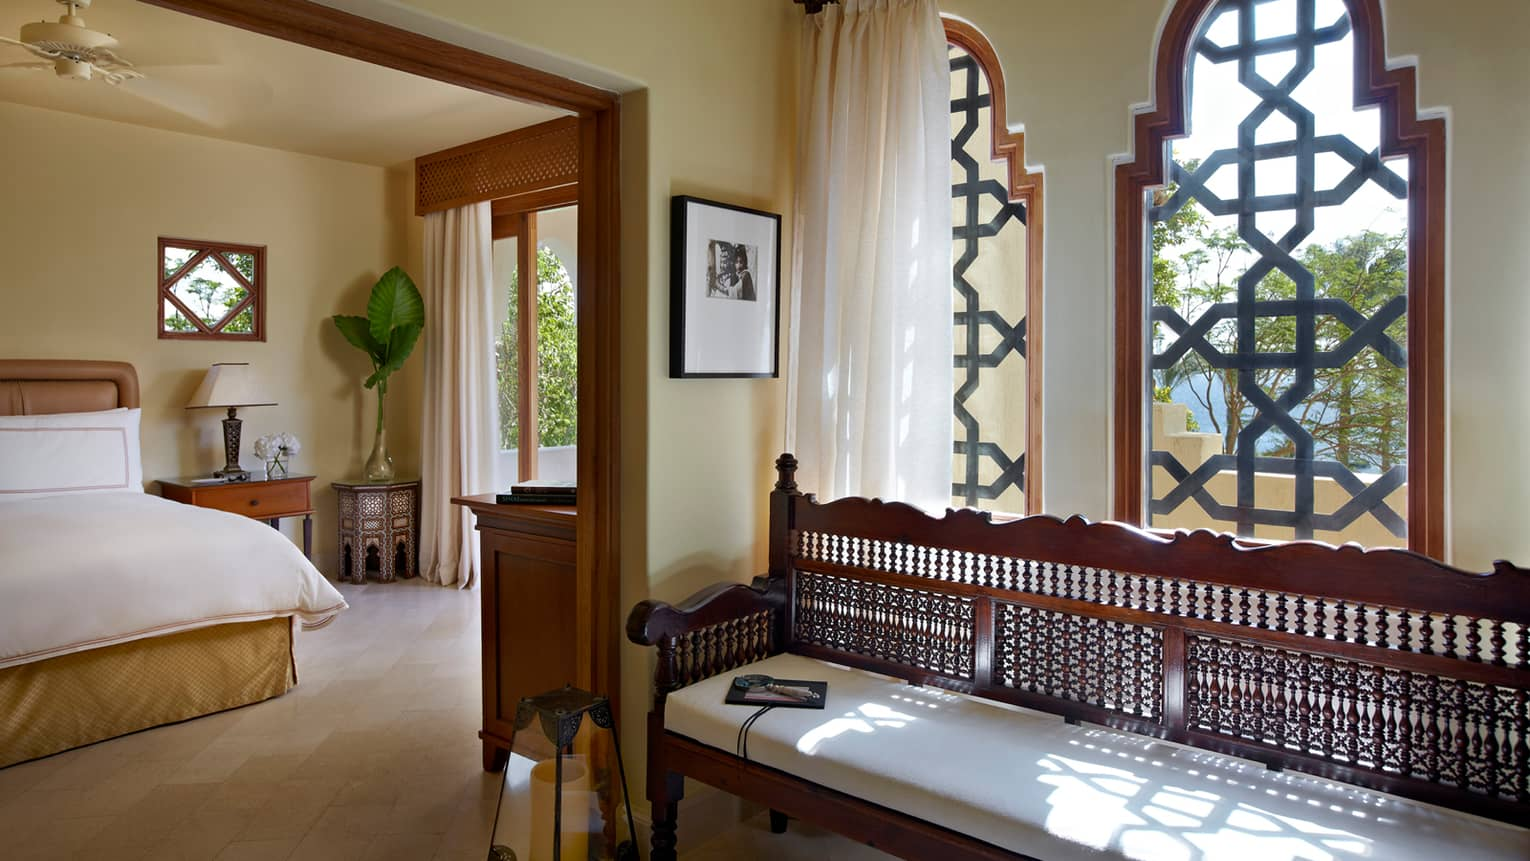 Four Bedroom Villa sunny bedroom with bed, nightstand, balcony door, long decorative wood bench with white cushion